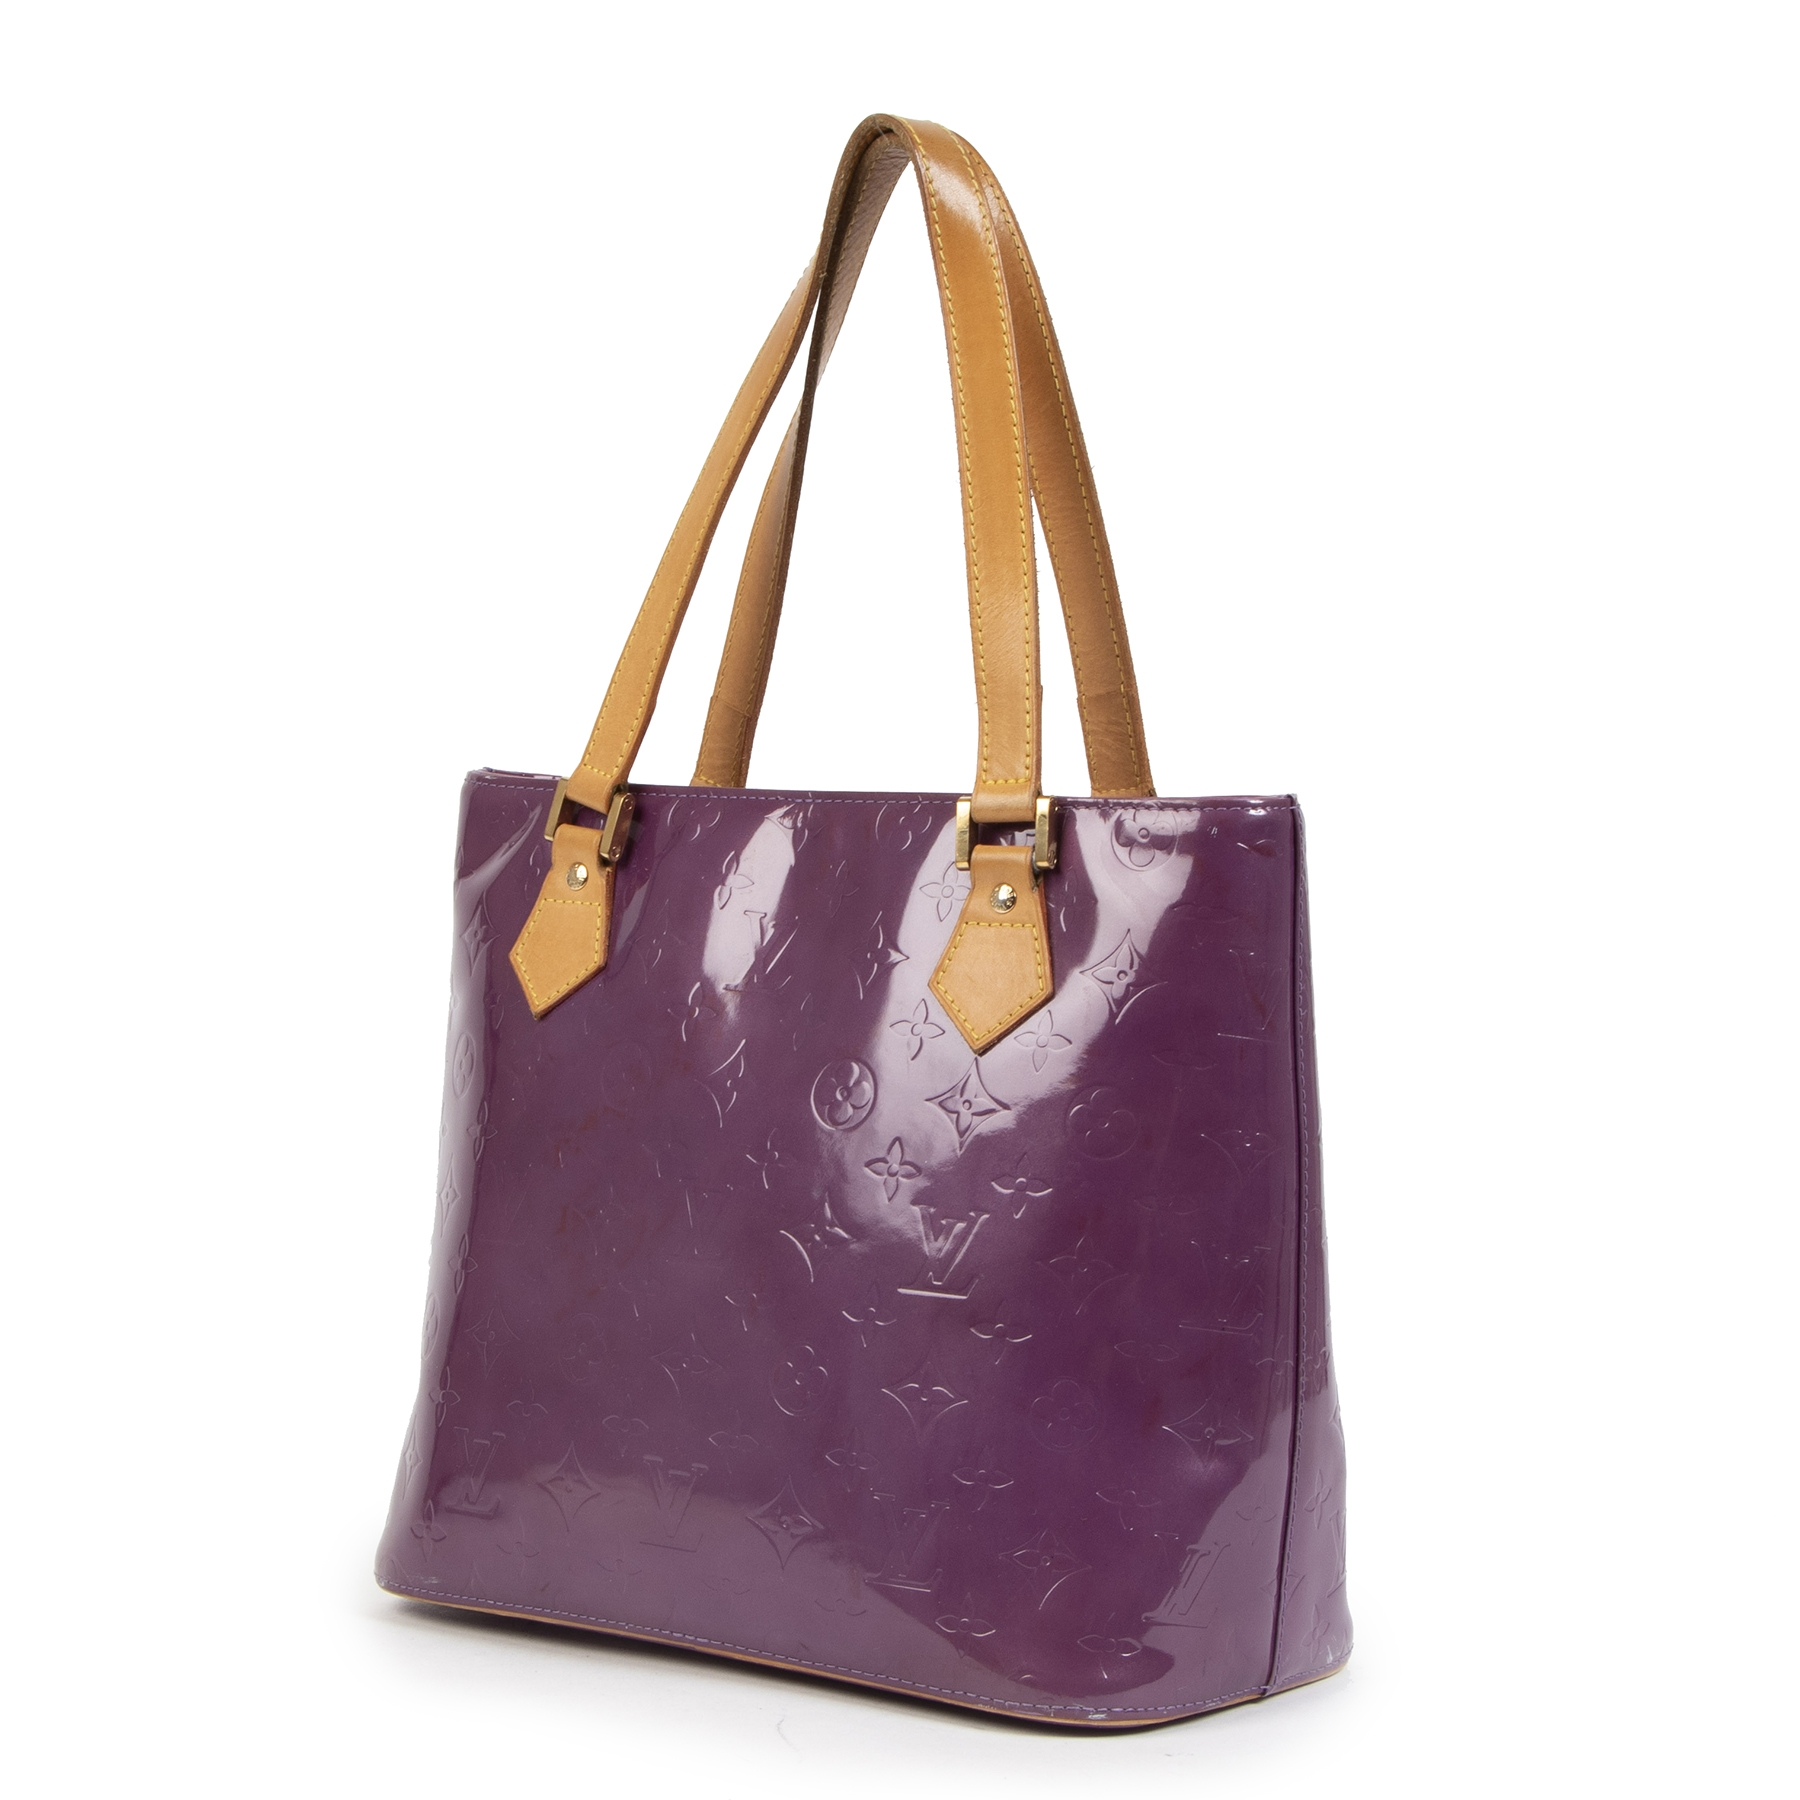 Authentic second-hand vintage Louis Vuitton Purple Houston Shoulder Bag  buy online webshop LabelLOV